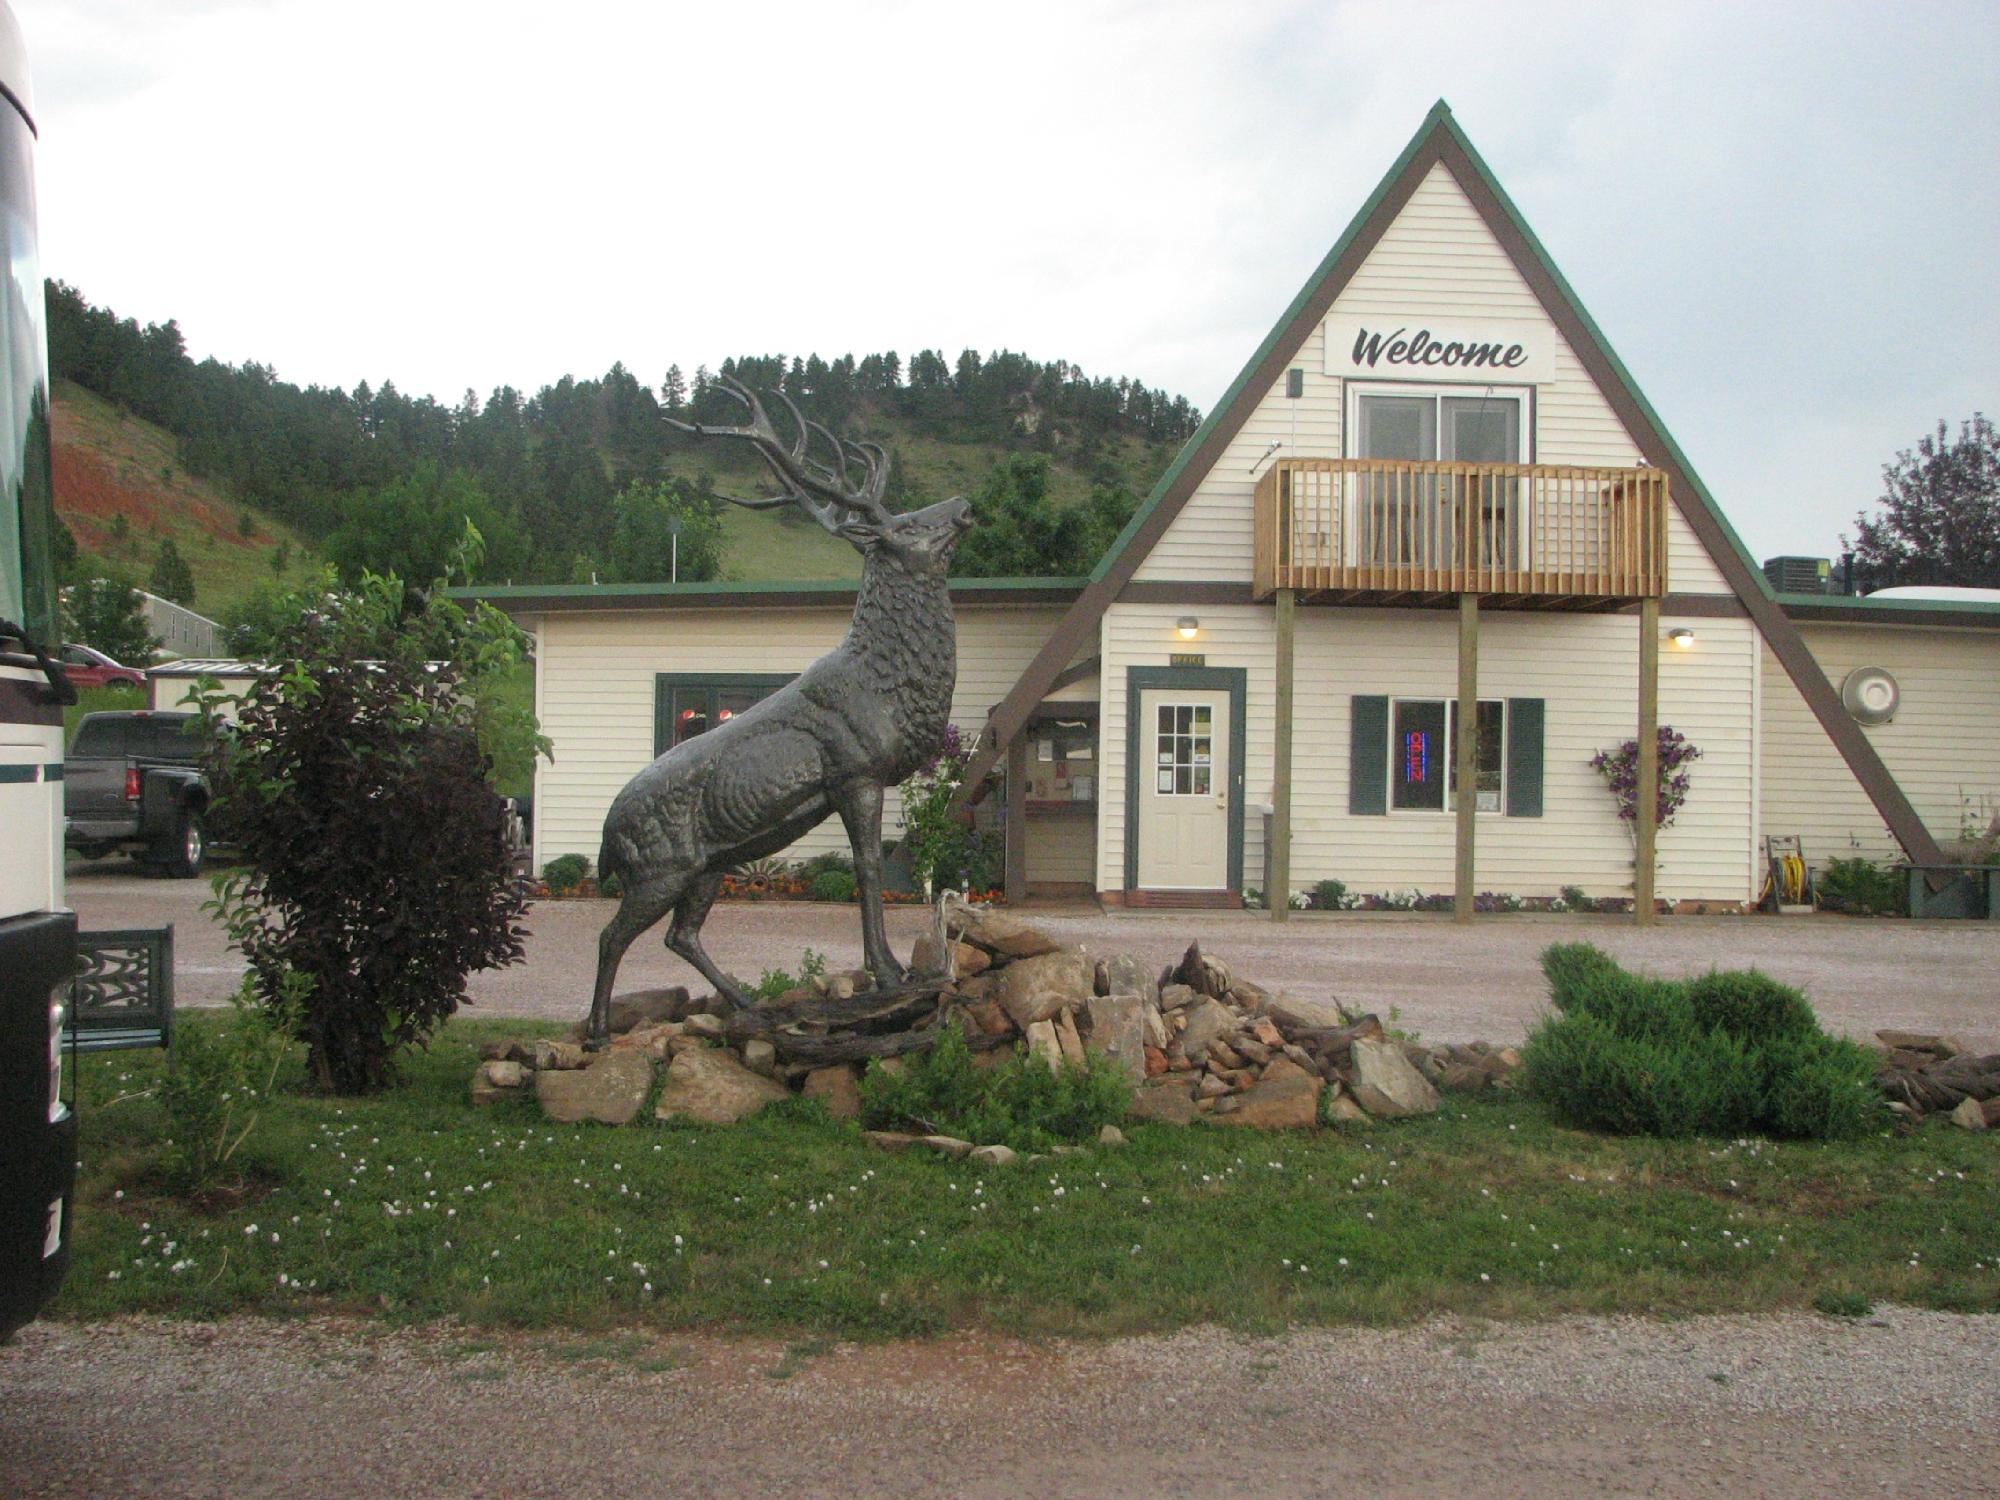 Sundance (WY) United States  city photos gallery : Mountain View RV Park & Campground Sundance, WY UPDATED 2016 ...